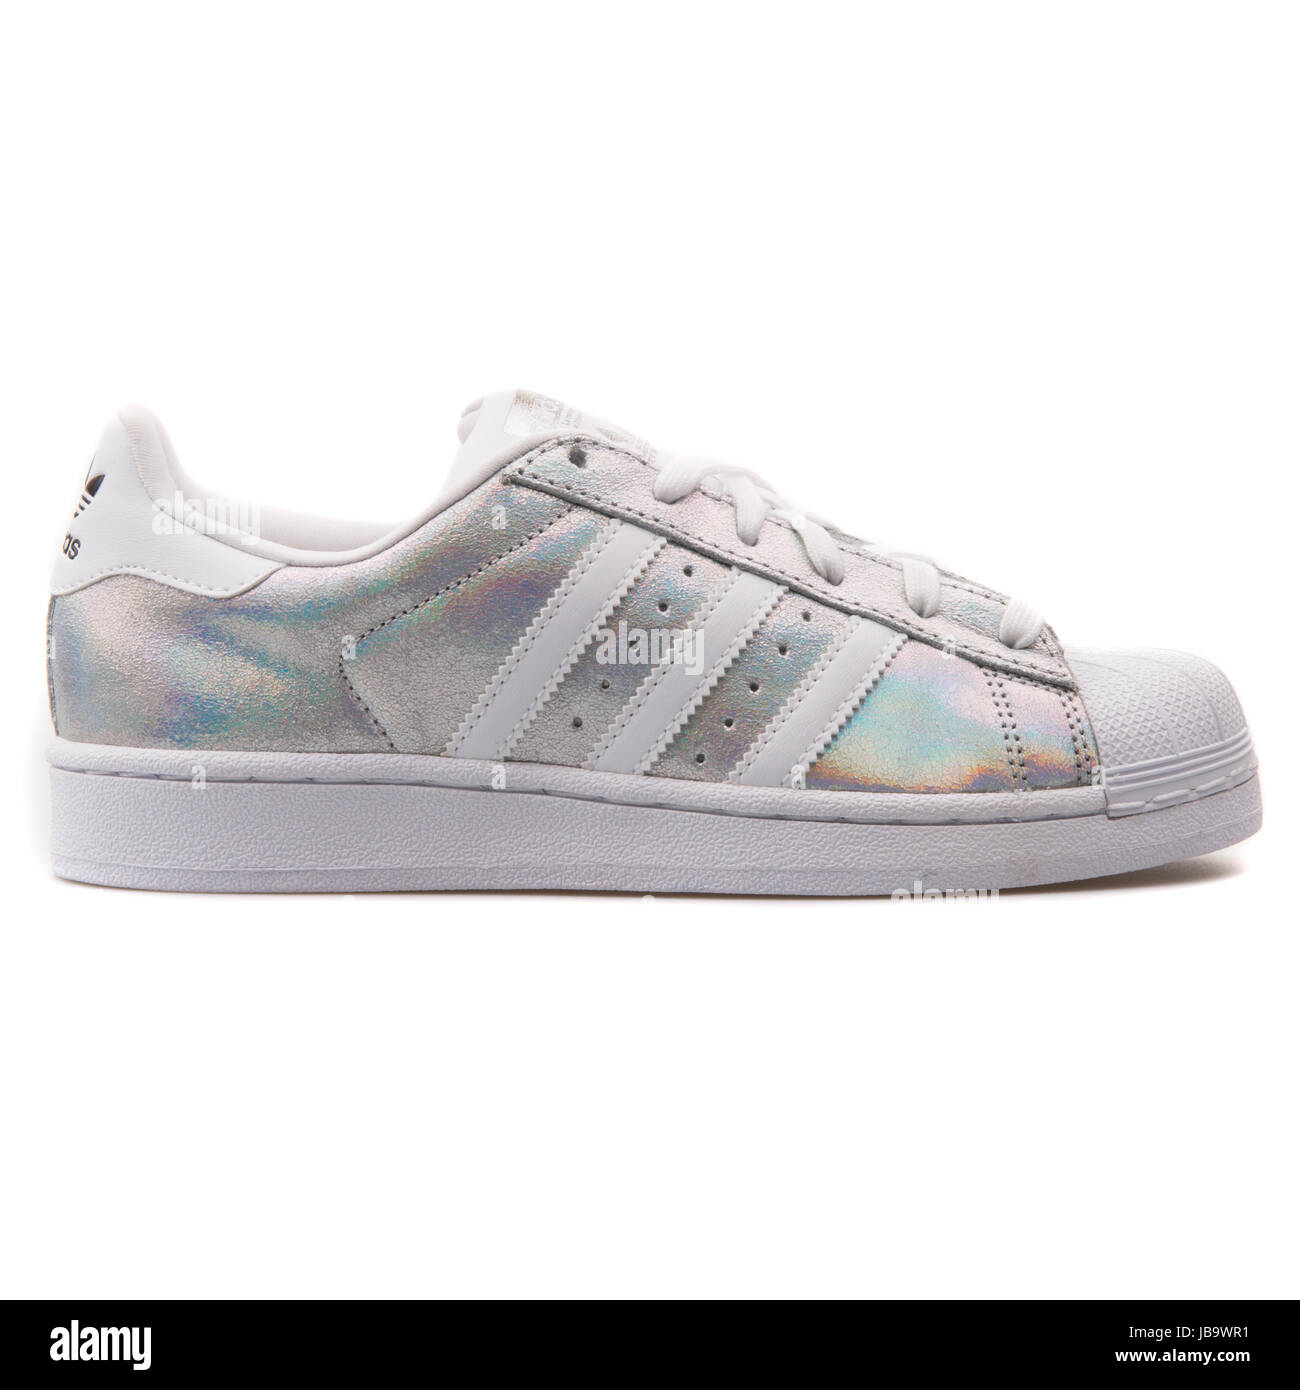 adidas superstar holographic silver w